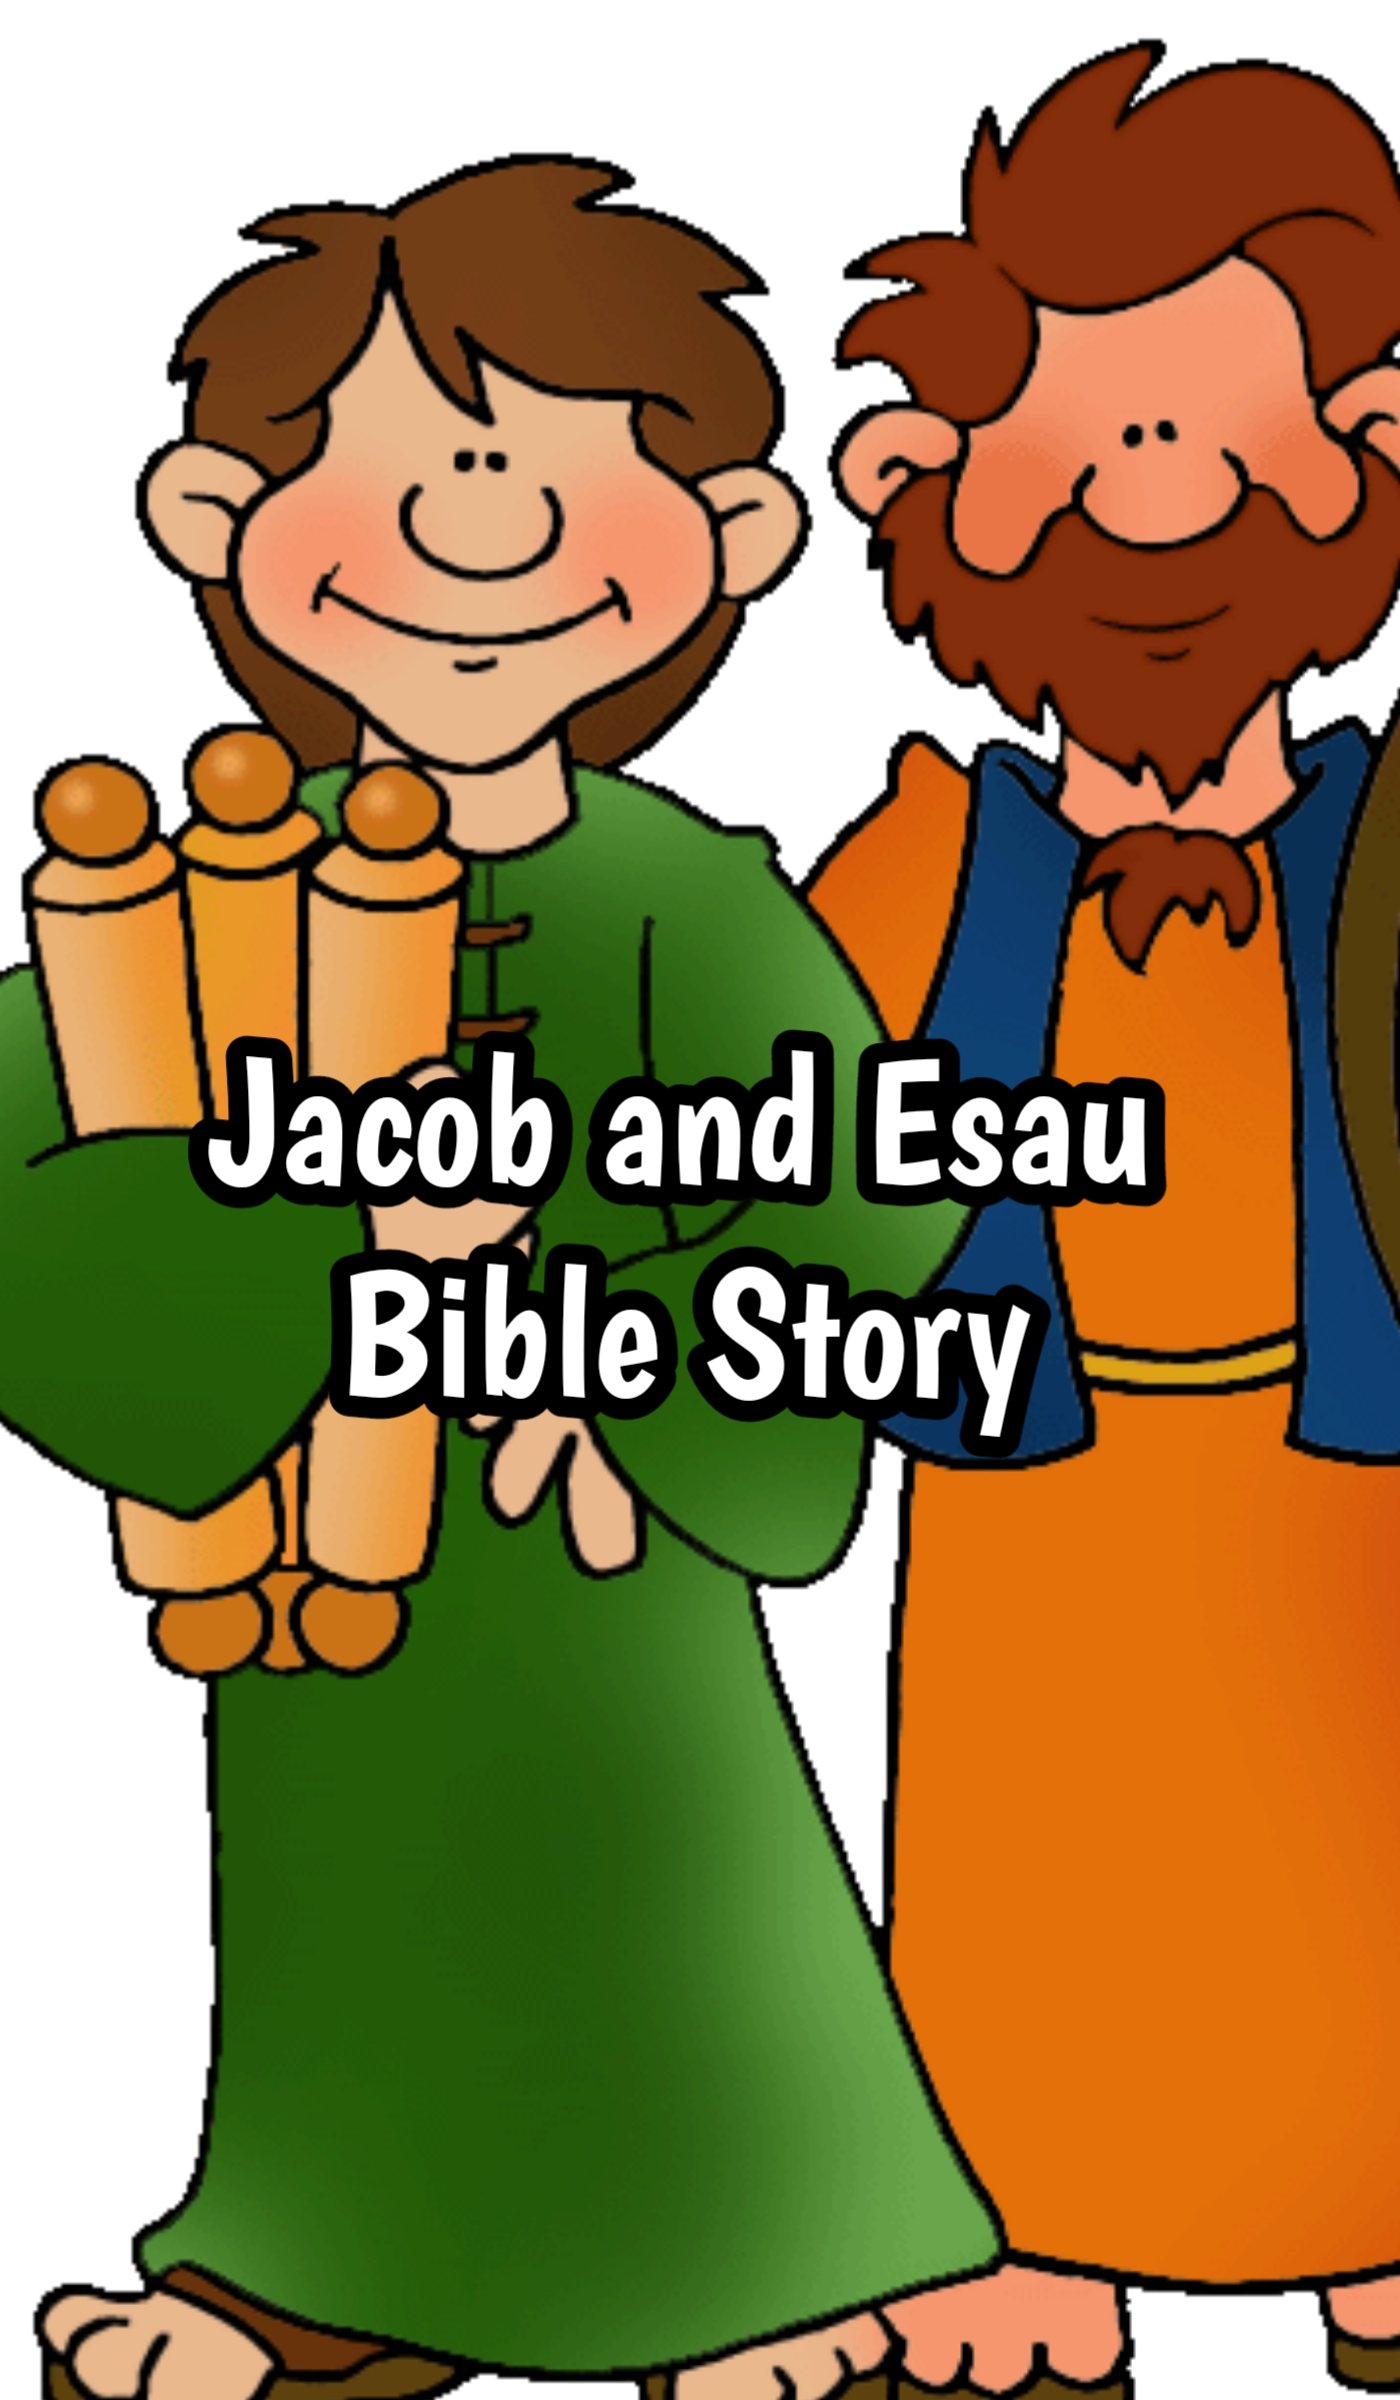 Jacob and Esau Bible Story in Hindi